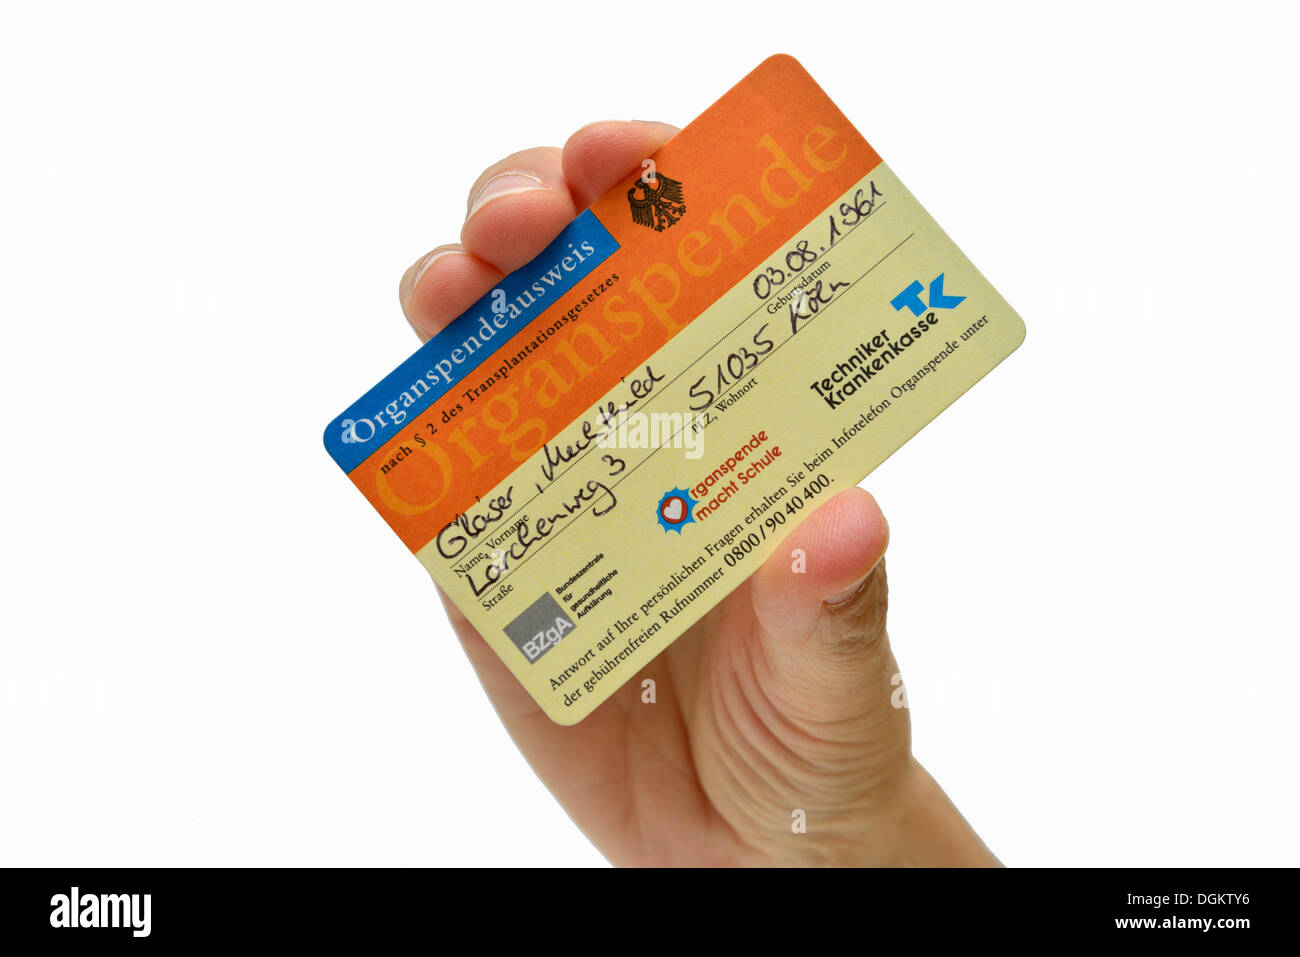 Hand holding a filled-out organ donor card, fictional data - Stock Image